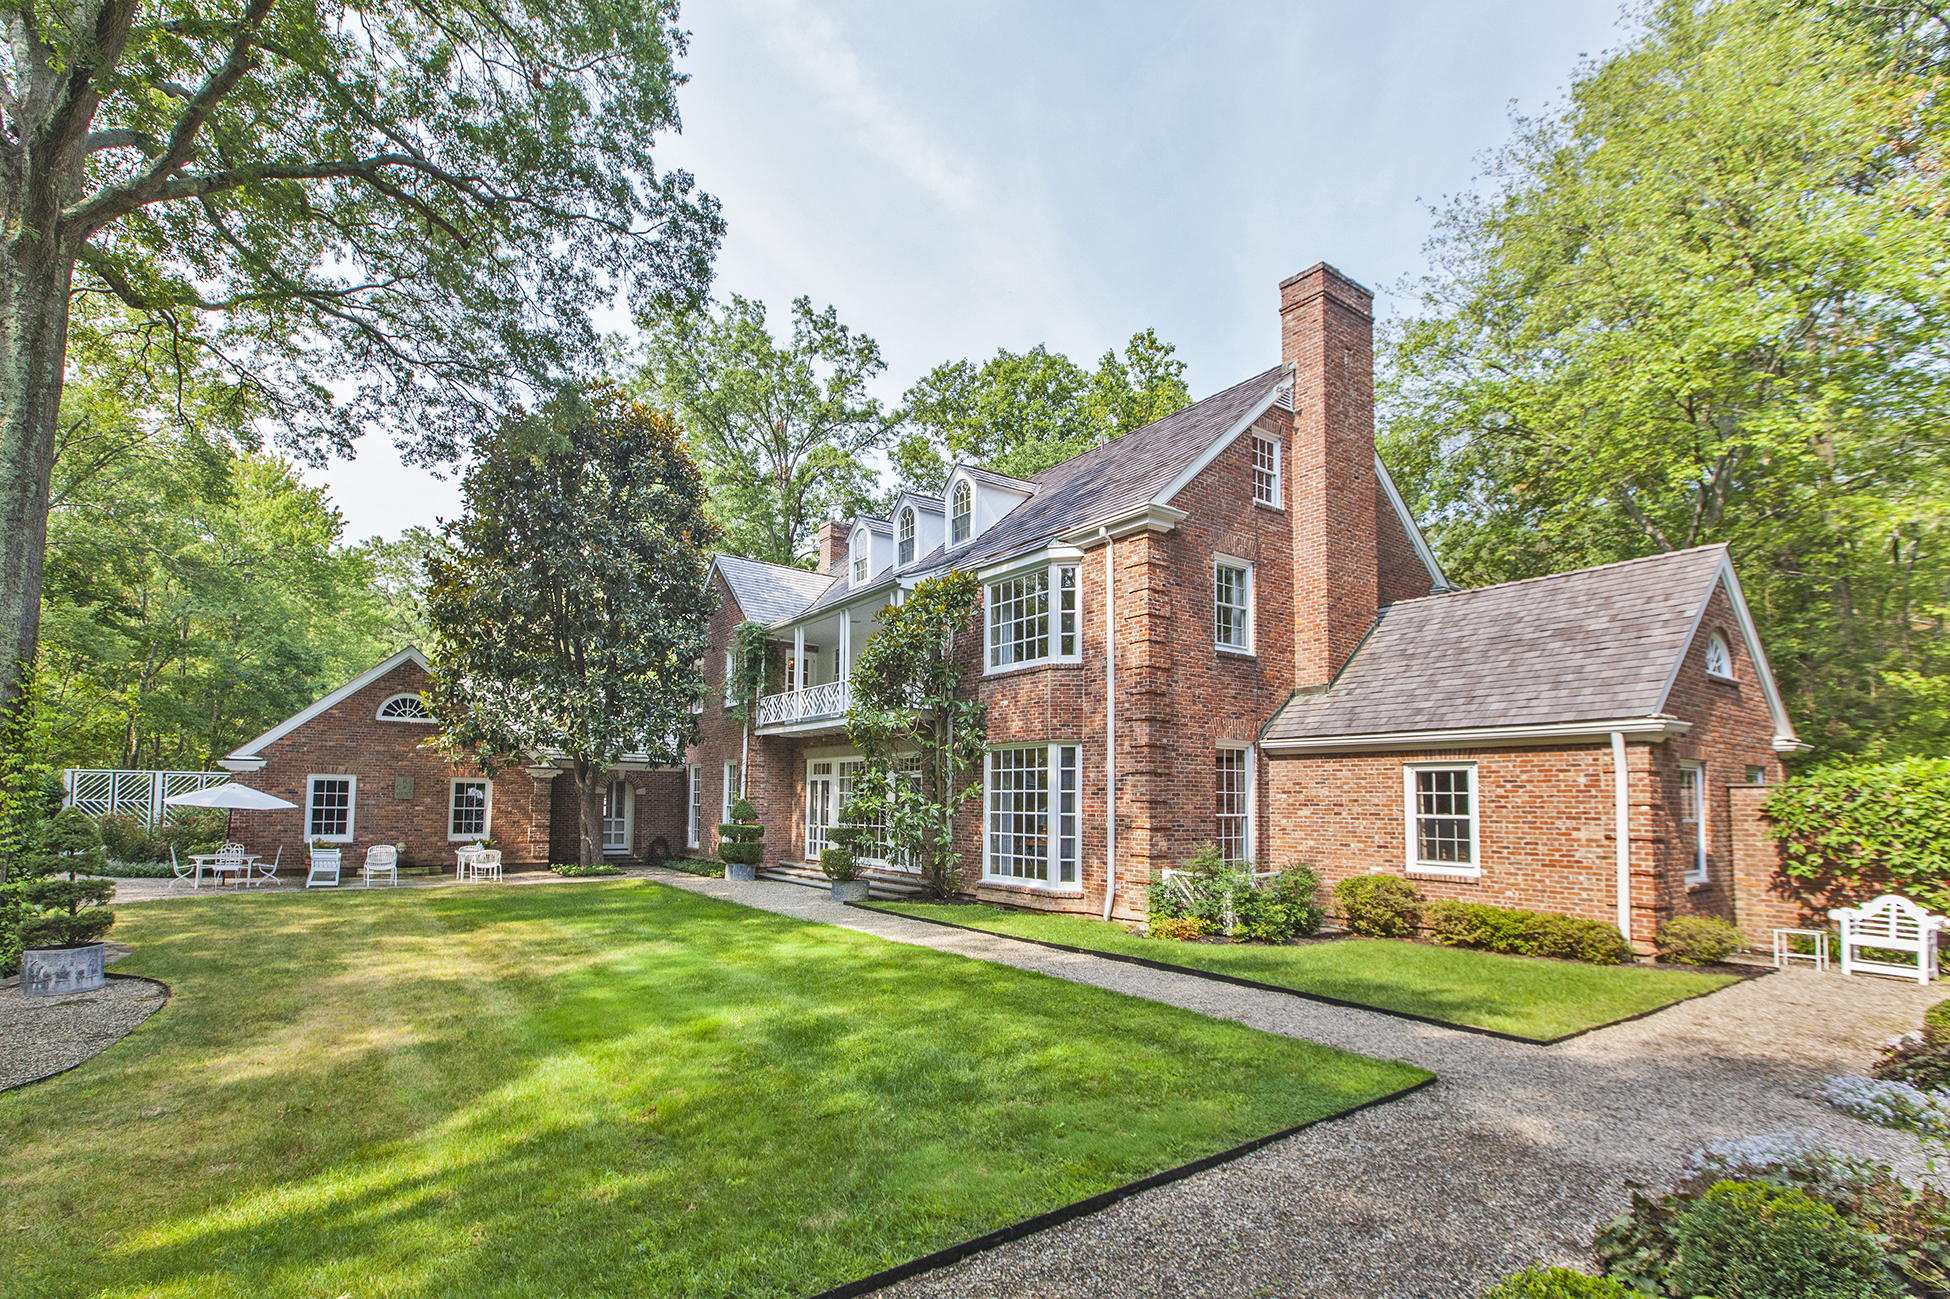 단독 가정 주택 용 매매 에 A Southern Belle of a Home Near Downtown Princeton 1834 Stuart Road West Princeton, 뉴저지, 08540 미국